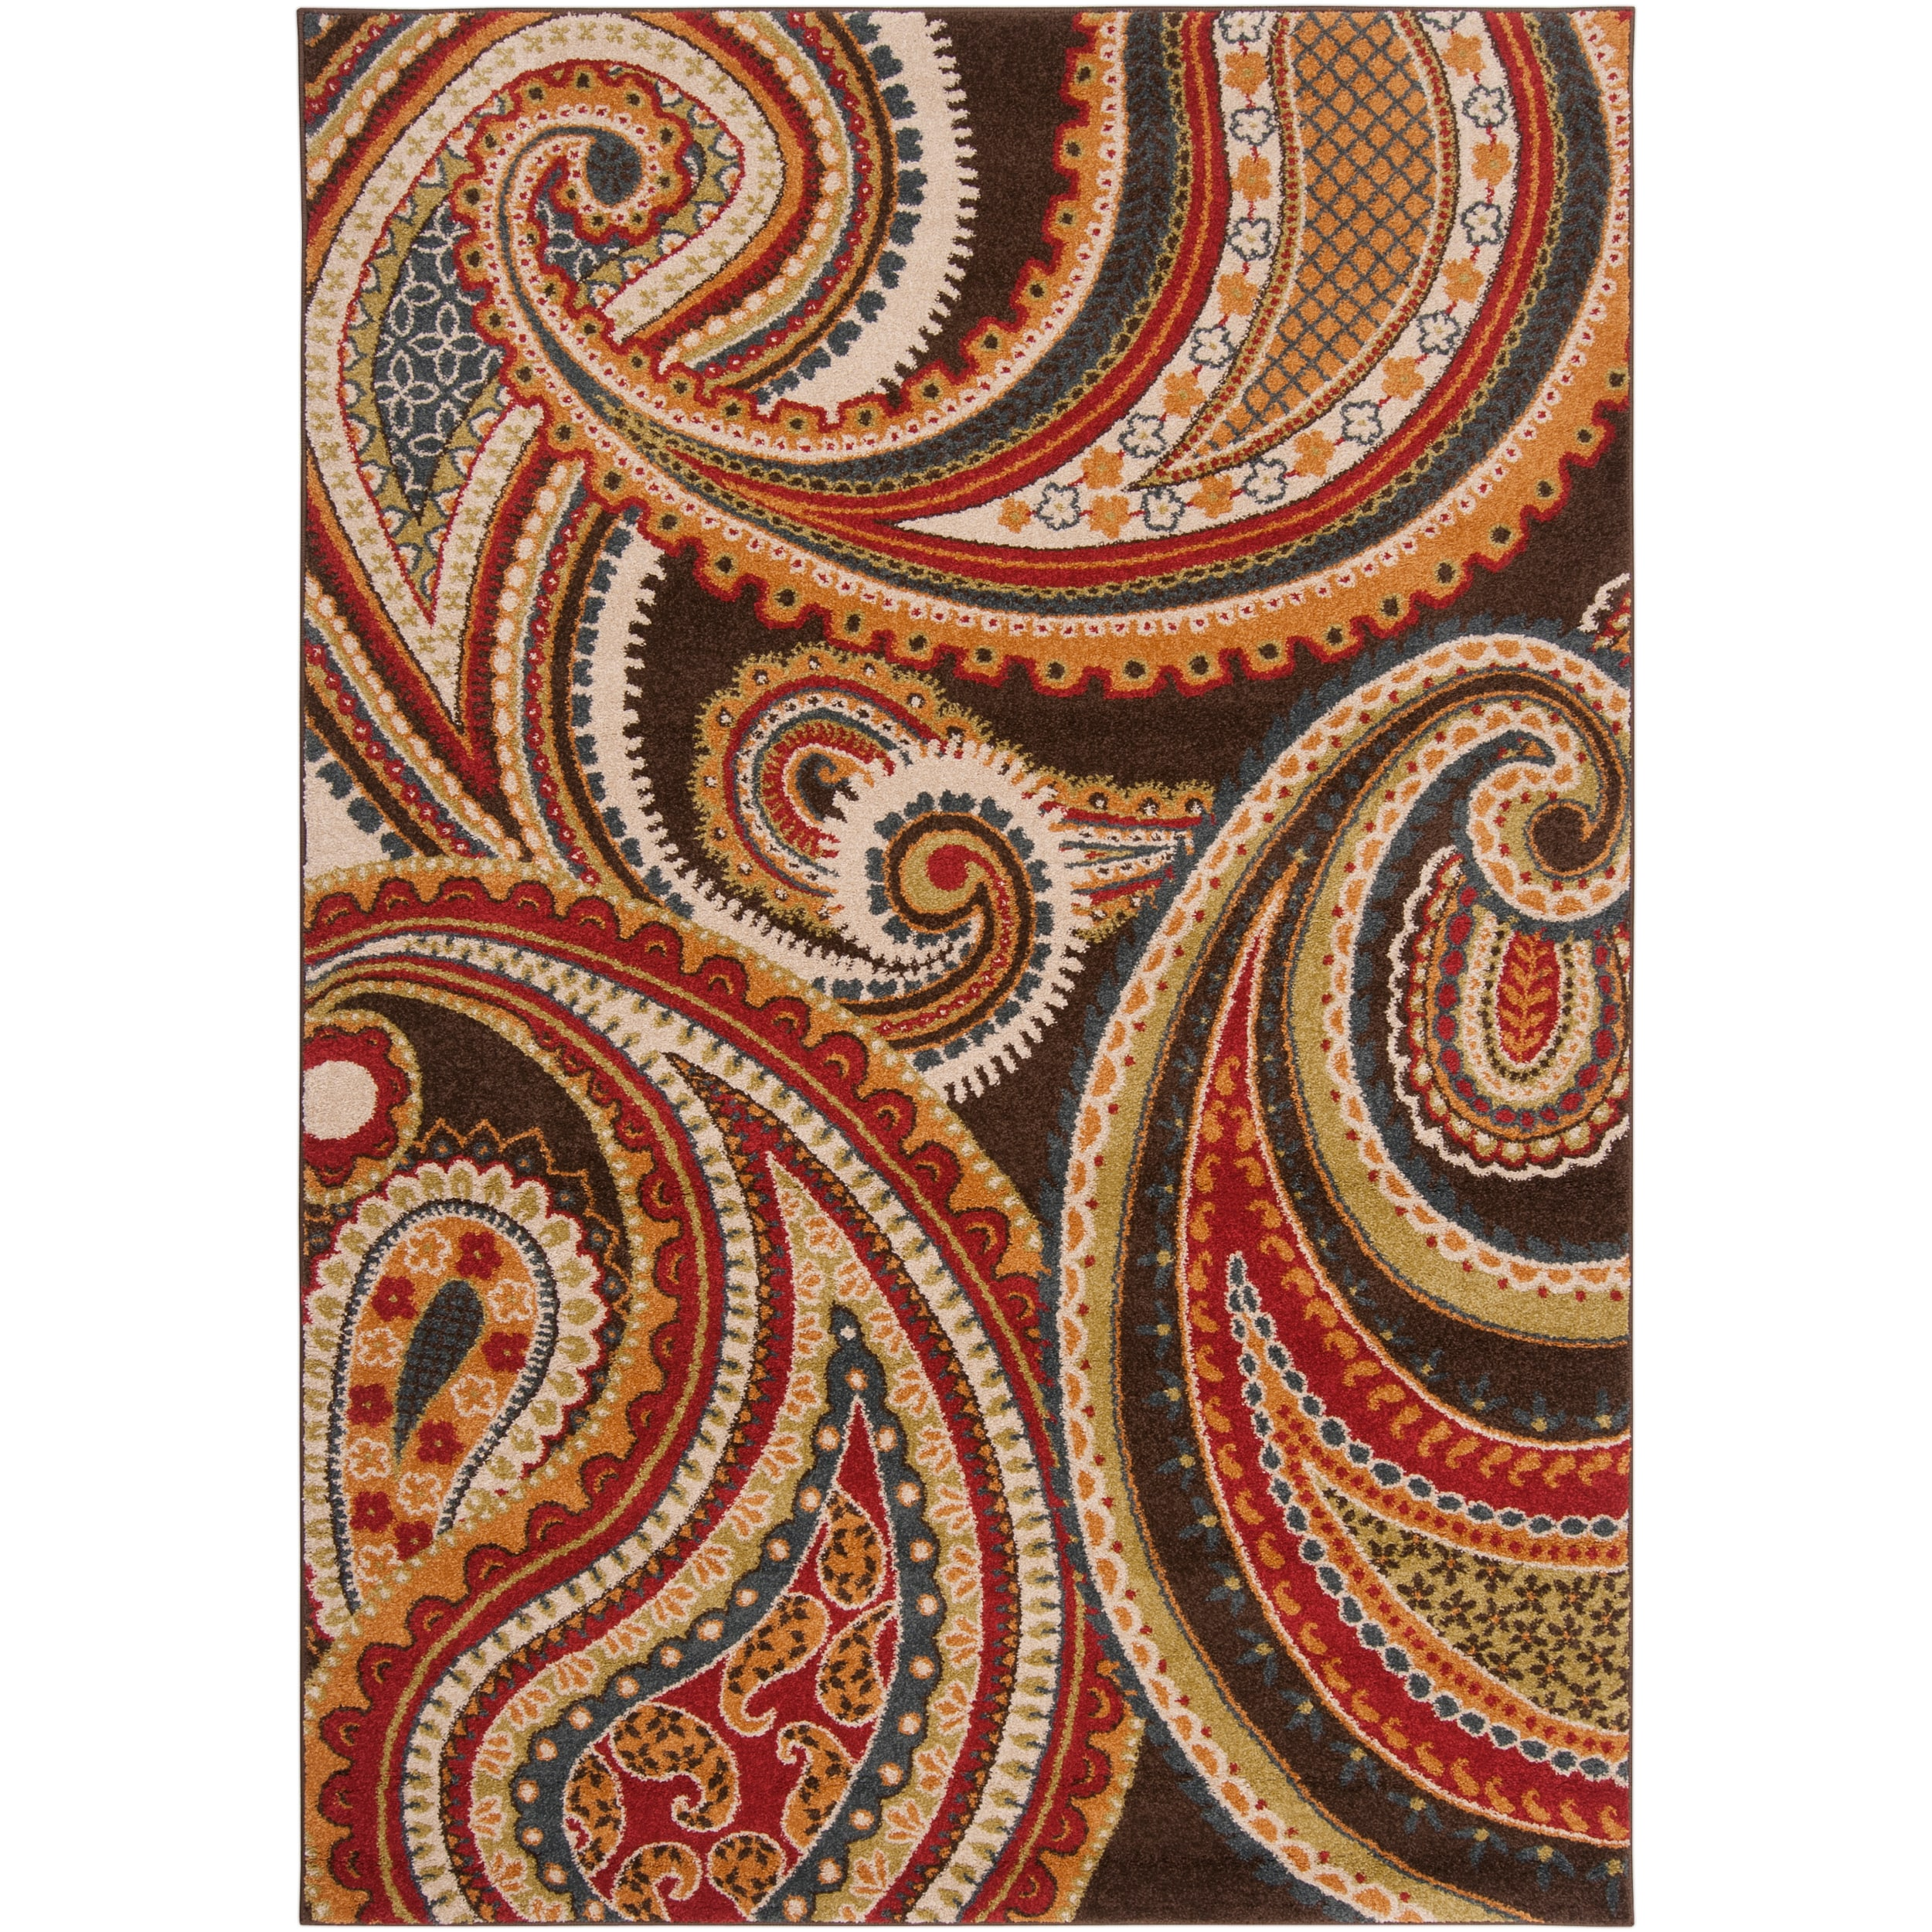 Meticulously Woven Contemporary Brown/Red Floral Paisley